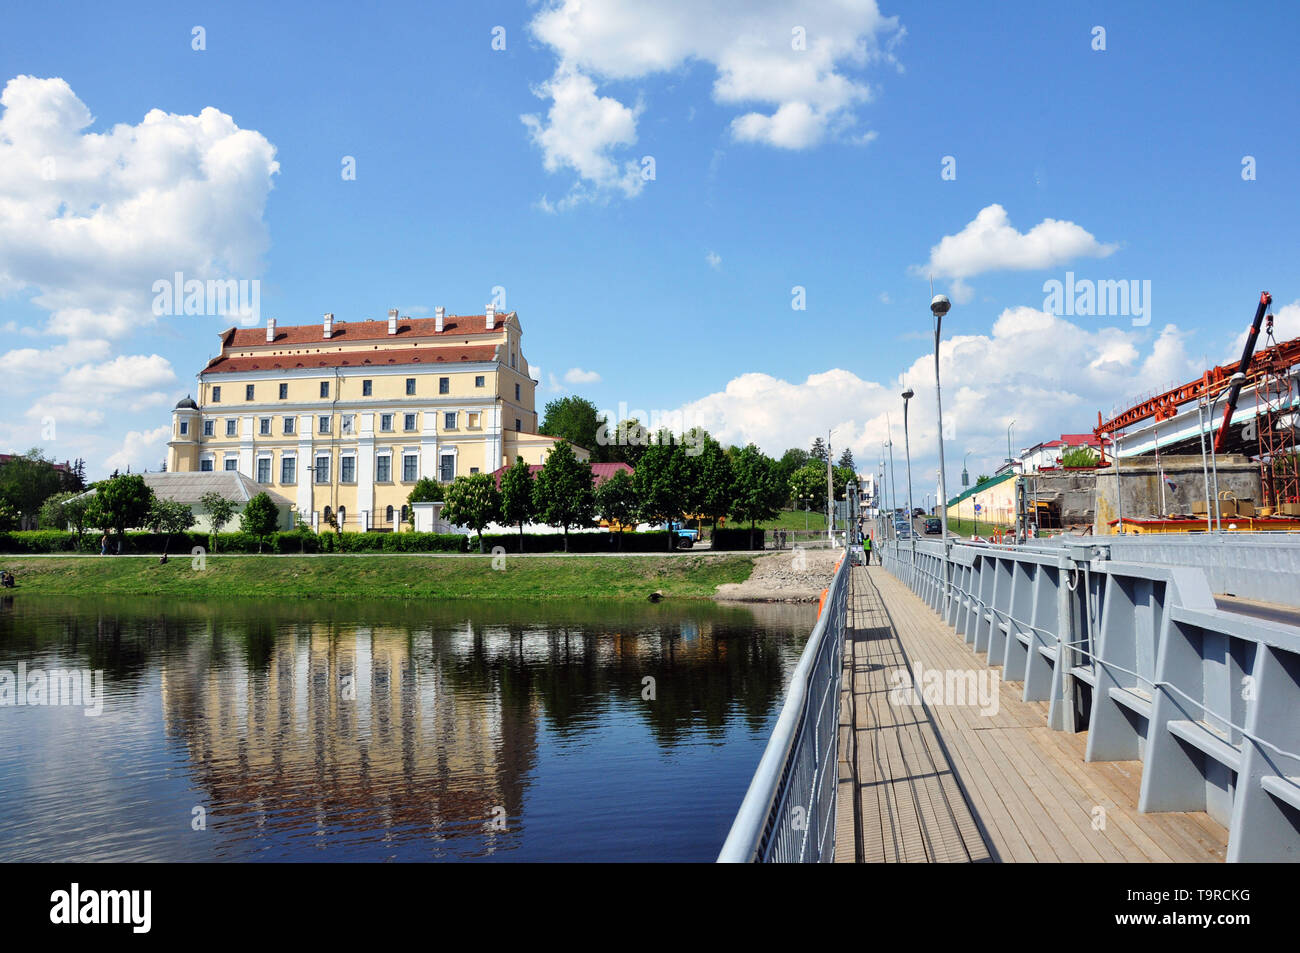 On the shore of Pina. View of the Jesuit Collegium, Pinsk, Belarus - Stock Image